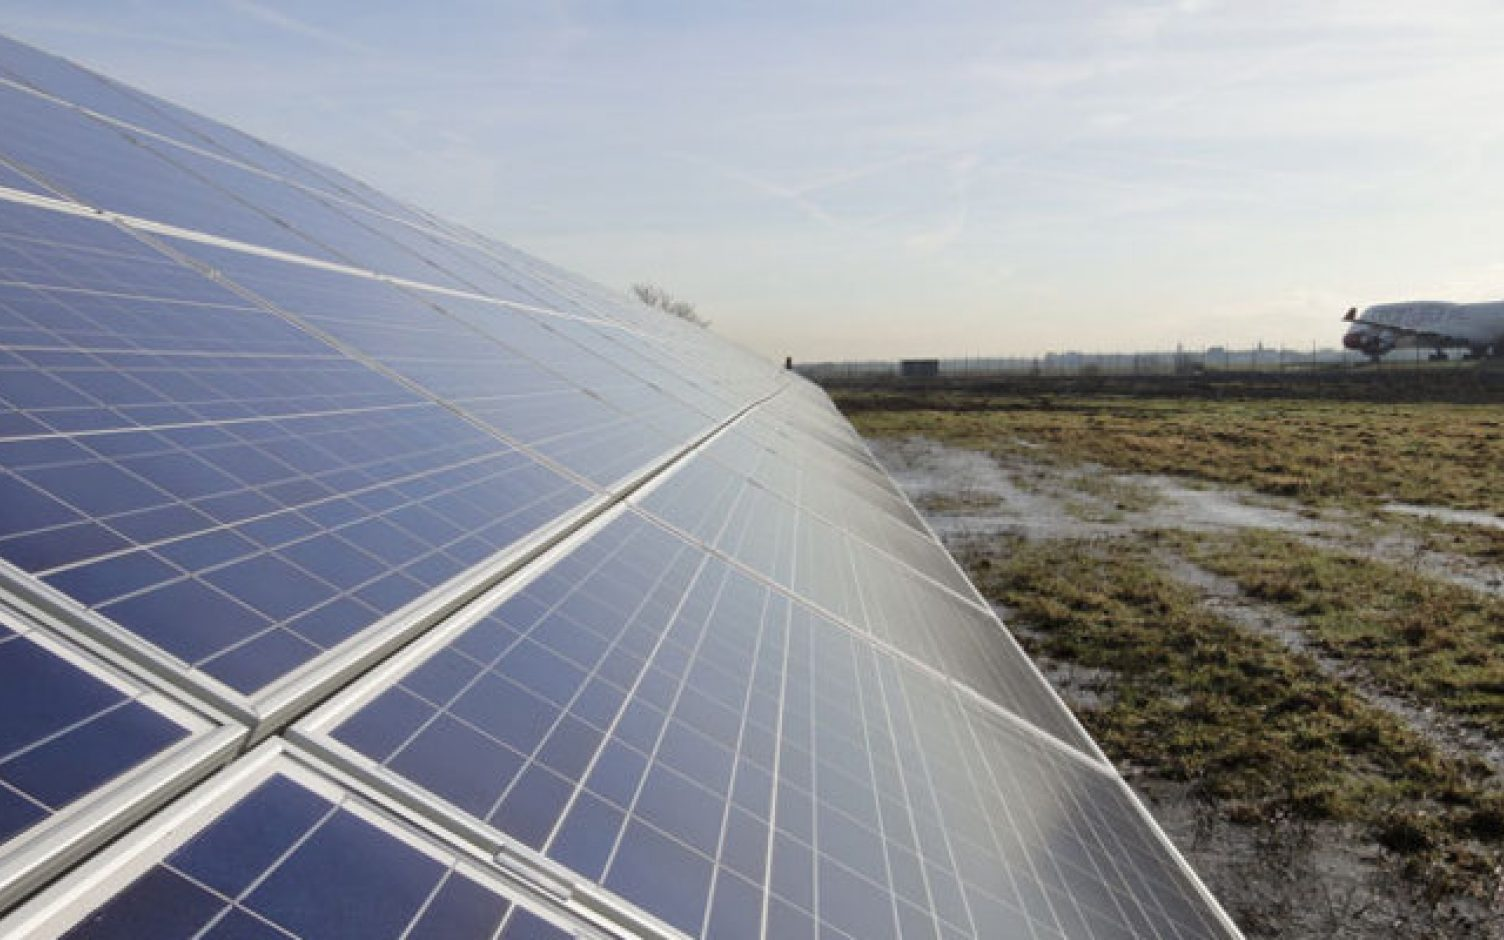 Vattenfall co-located solar with wind at Parc Cynog in Wales last year. Image: Vattenfall.